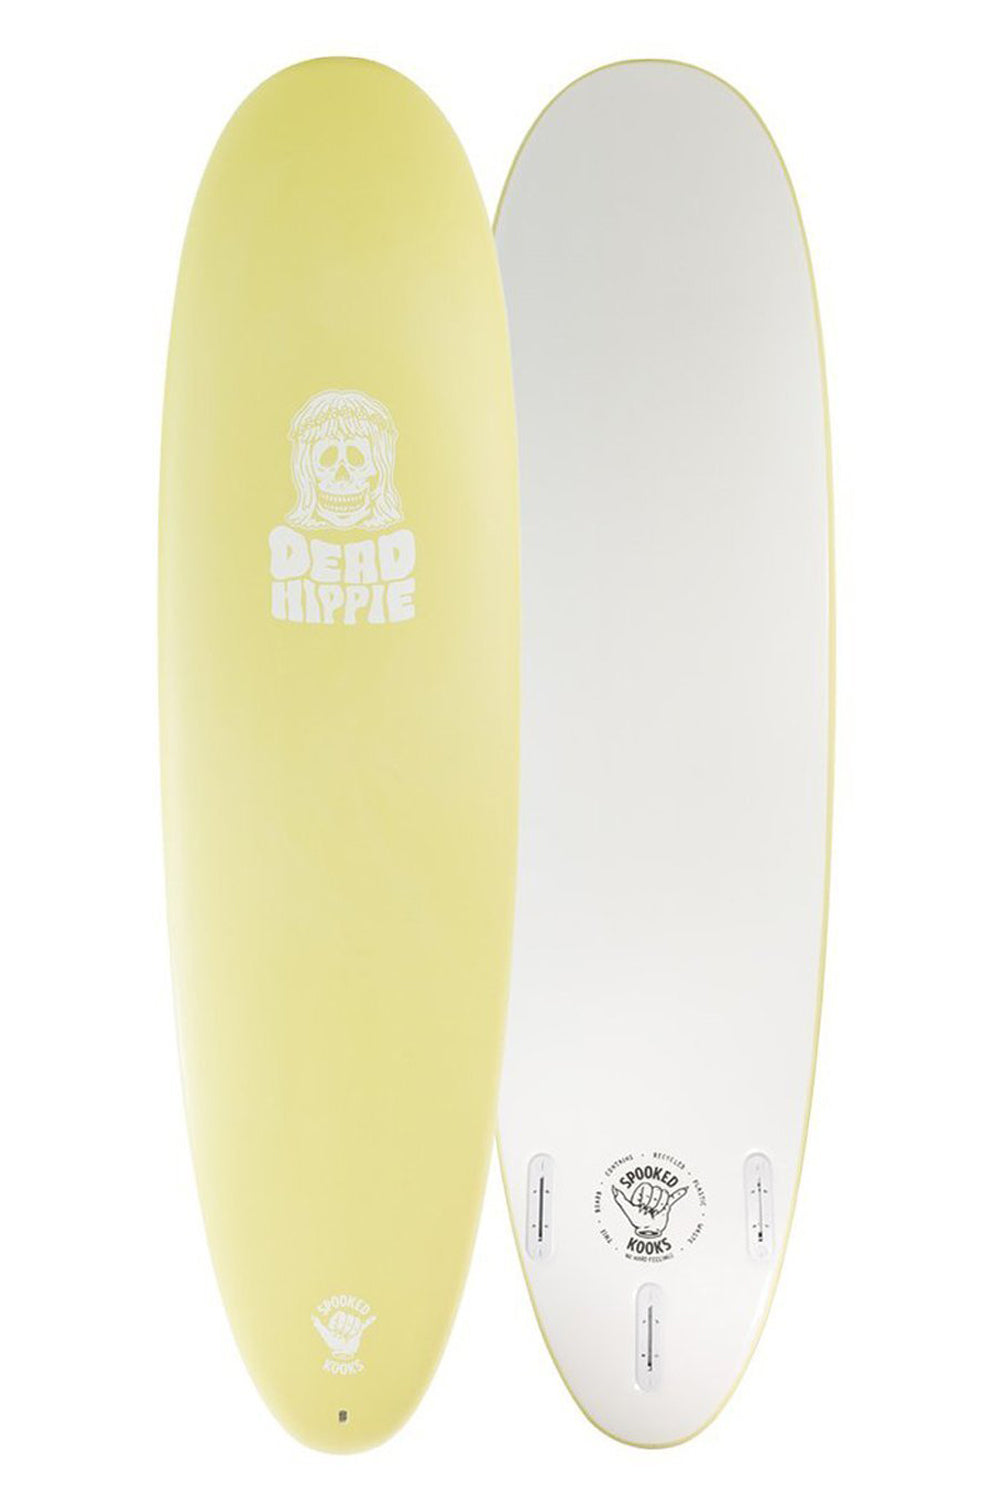 Spooked Kooks Dead Hippie 7ft Softboard